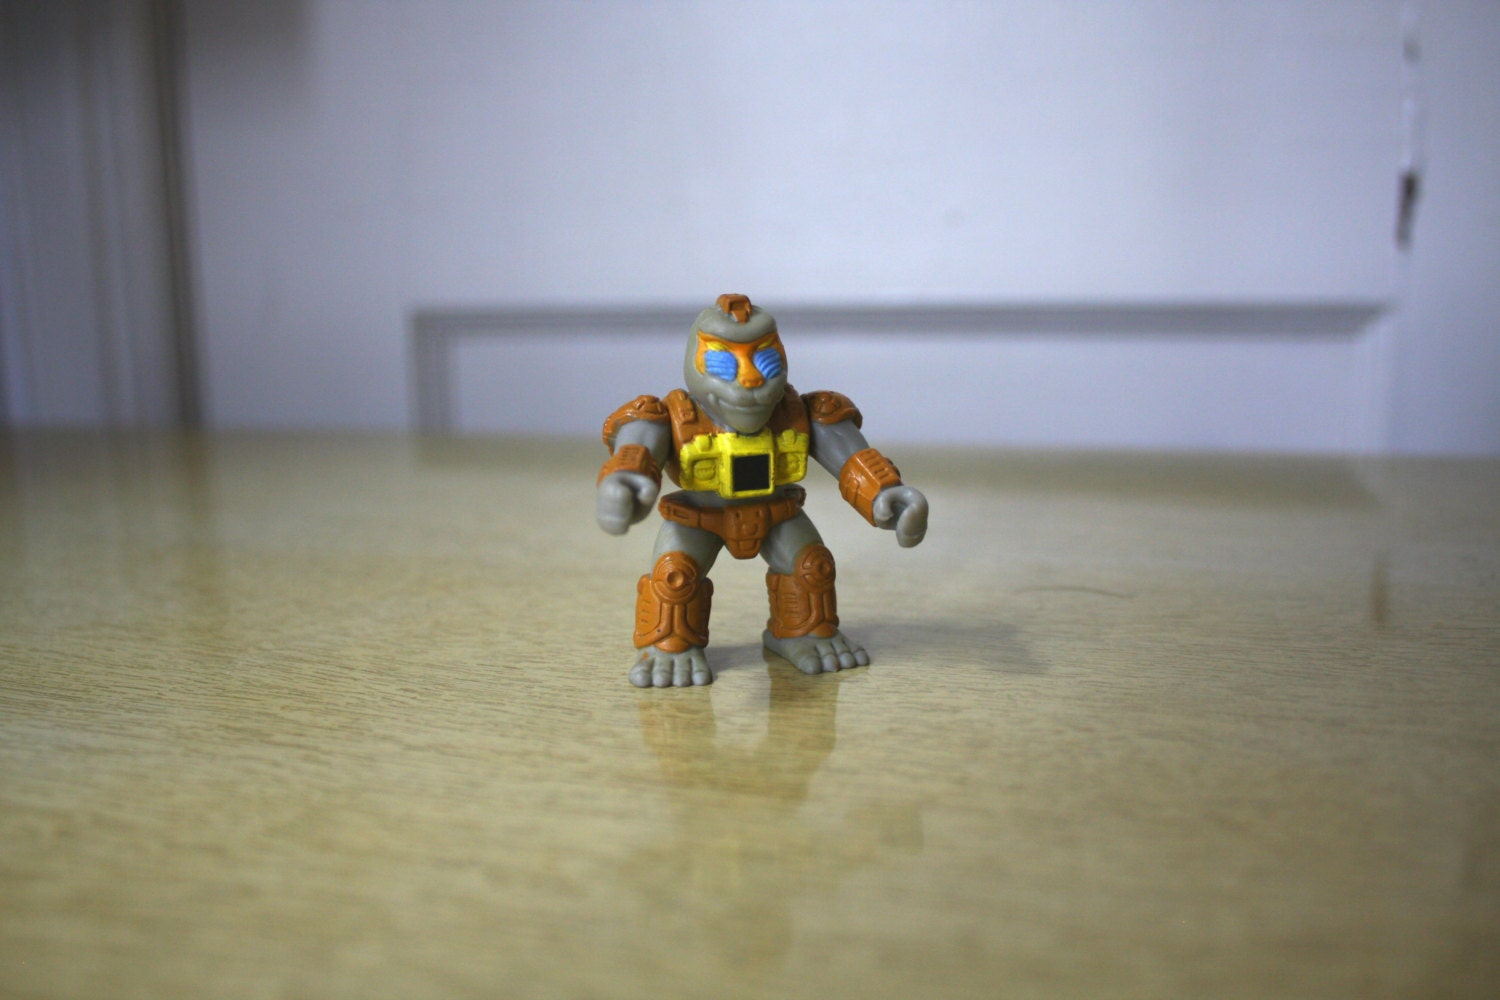 Rare Toys From The 80s : Battle beast beastformers rare vintage s toy by